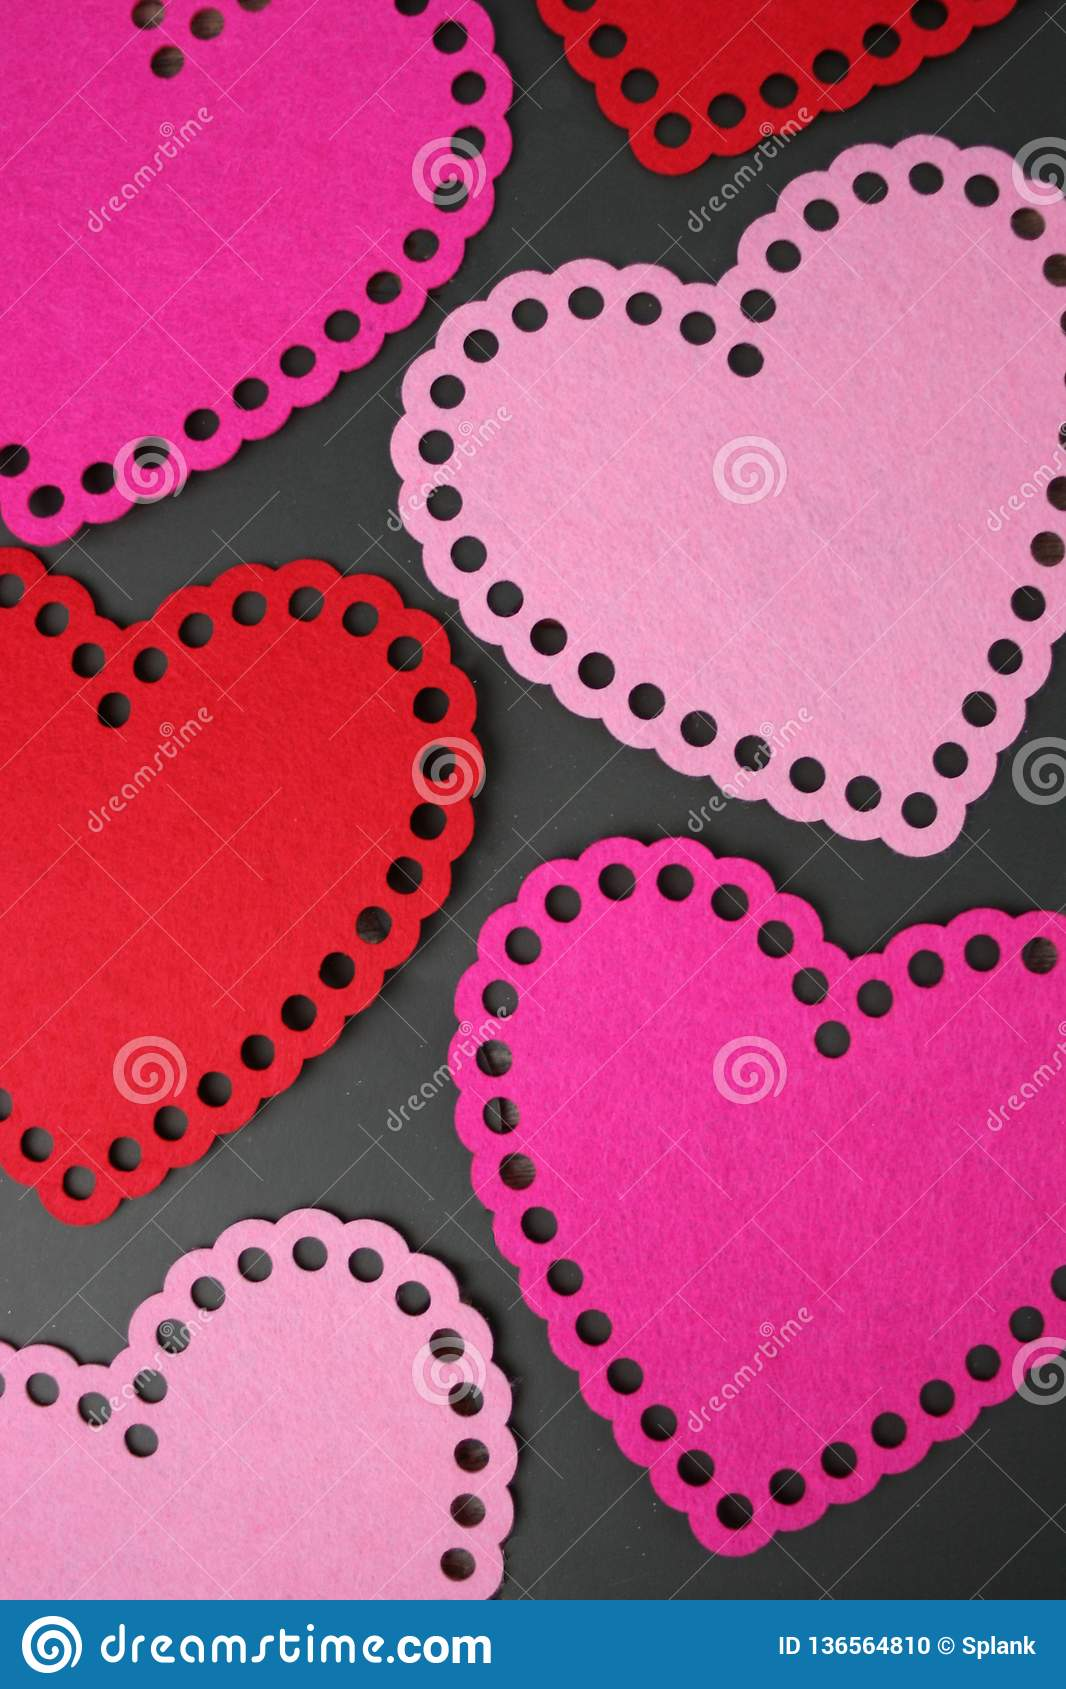 Pink and Red Hearts Over Black Background